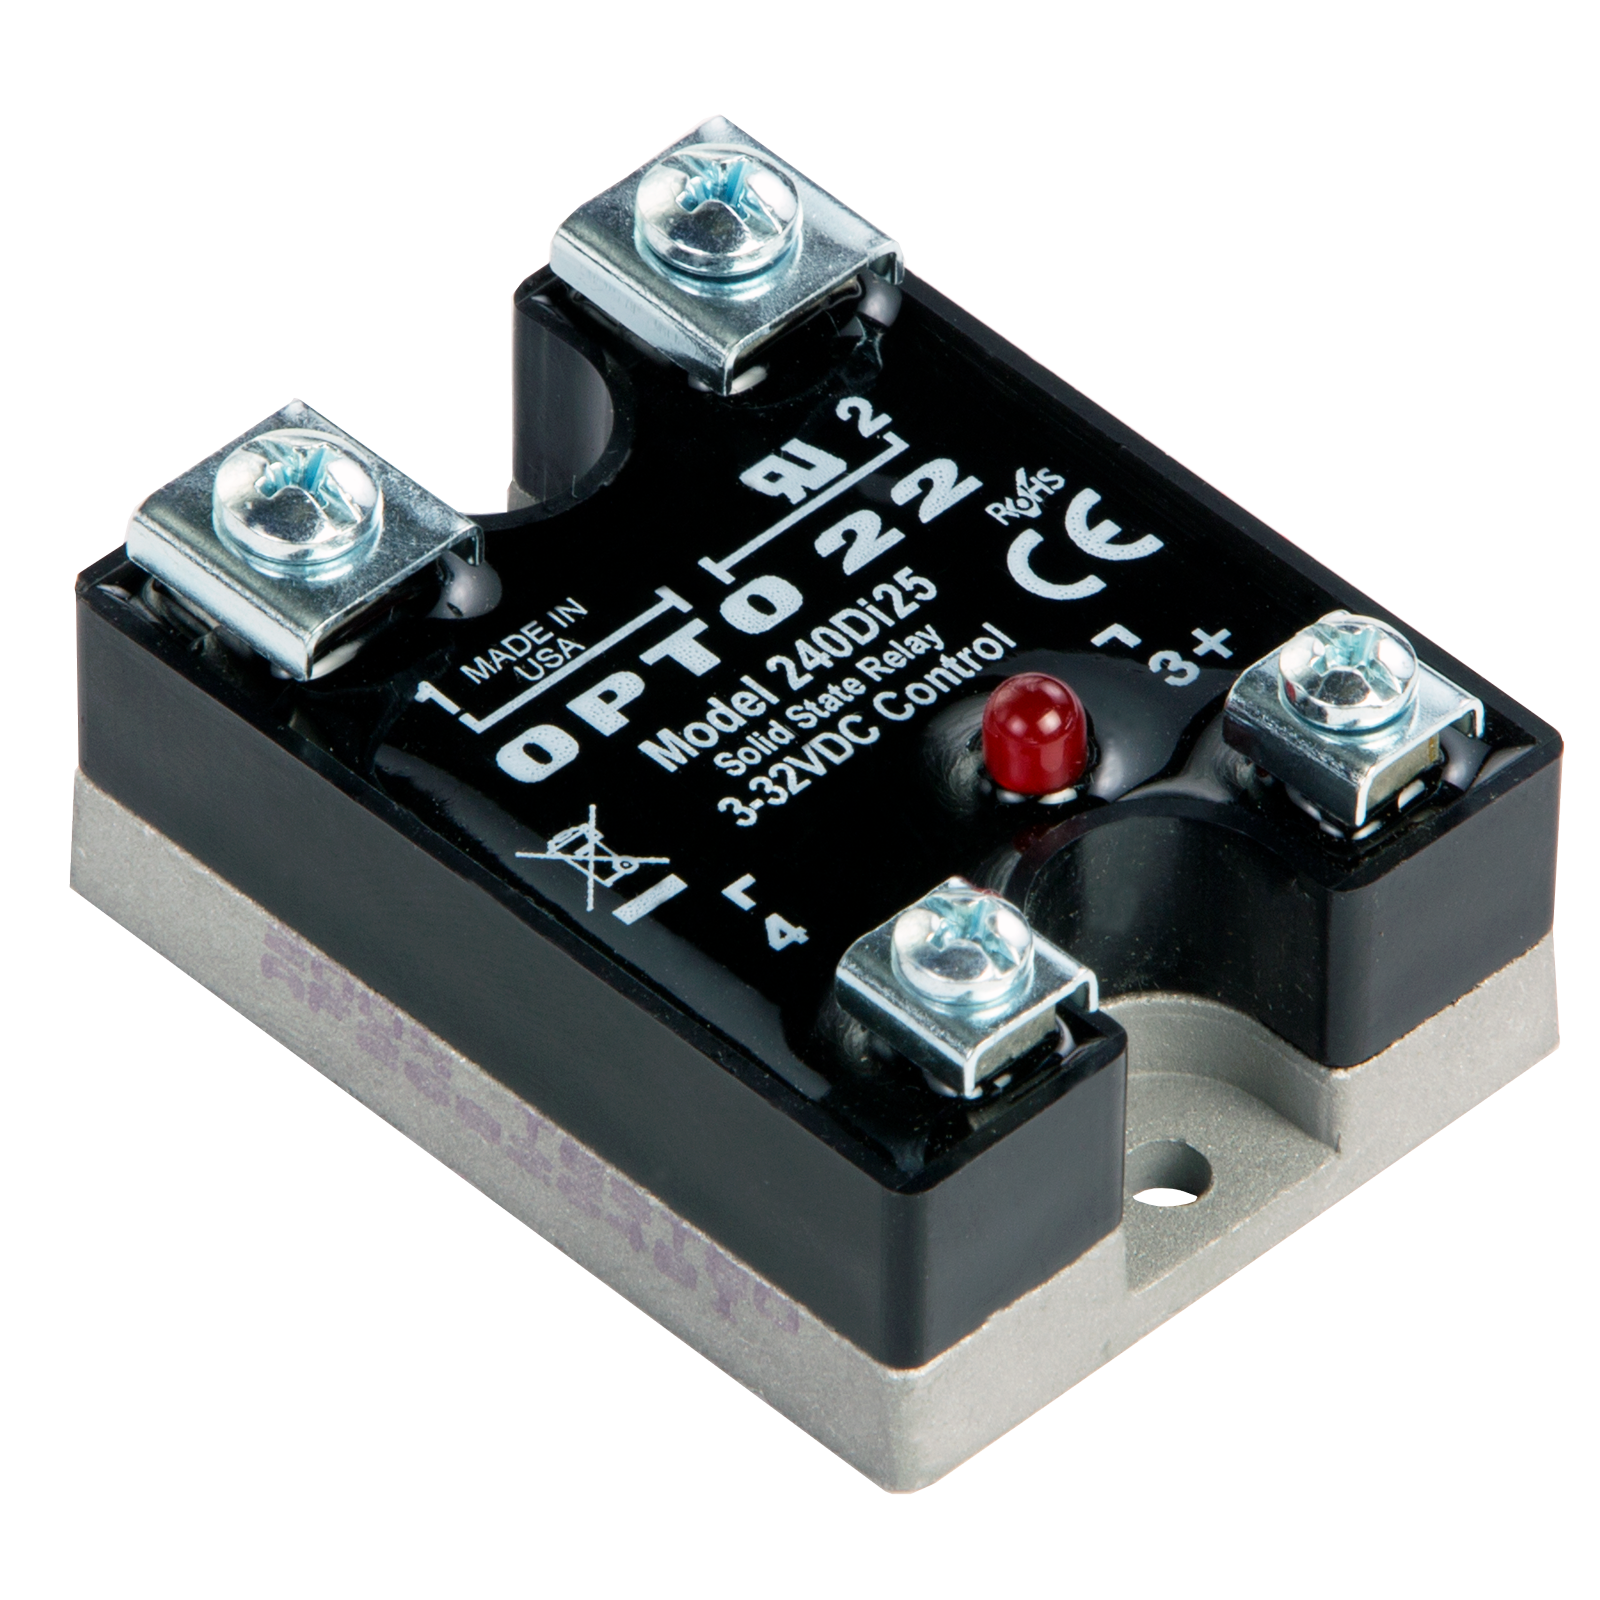 Opto 22 Wiring Diagram Online 240vac Opto22 240di25 240 Vac 25 Amp Dc Control Solid State Relay Pb4